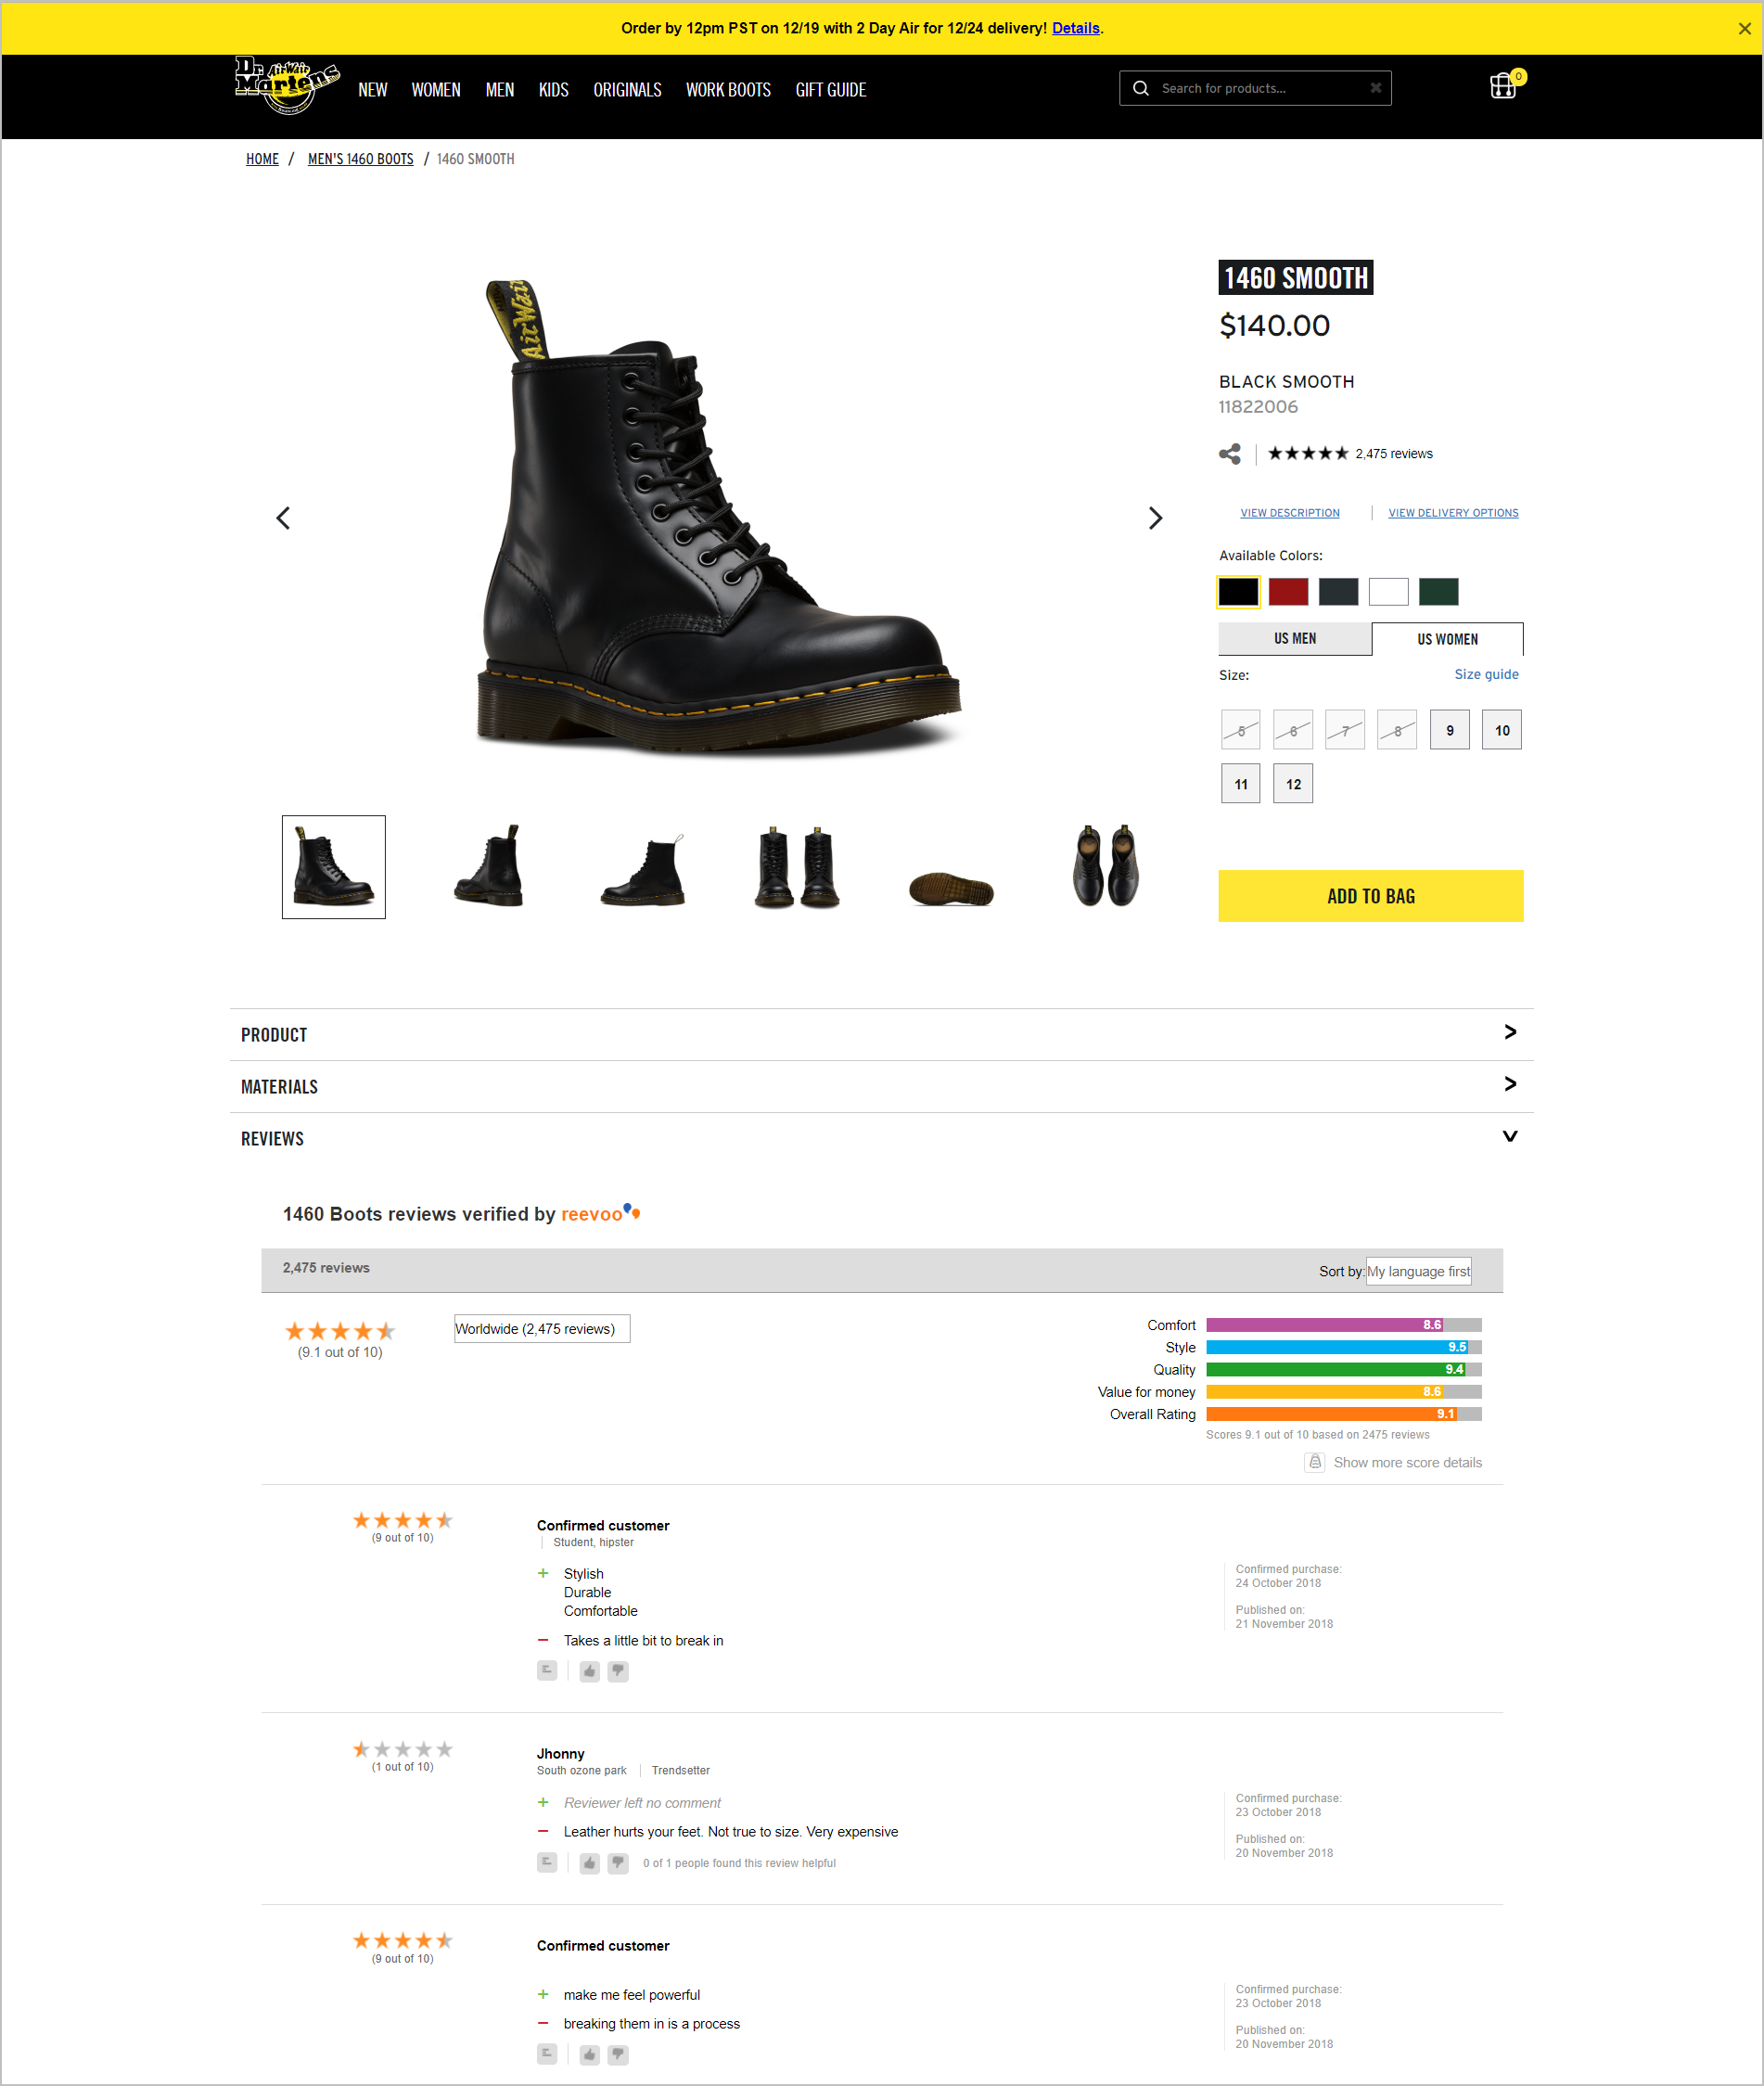 DrMartens.com's product detail page with reviews from Reevoo.